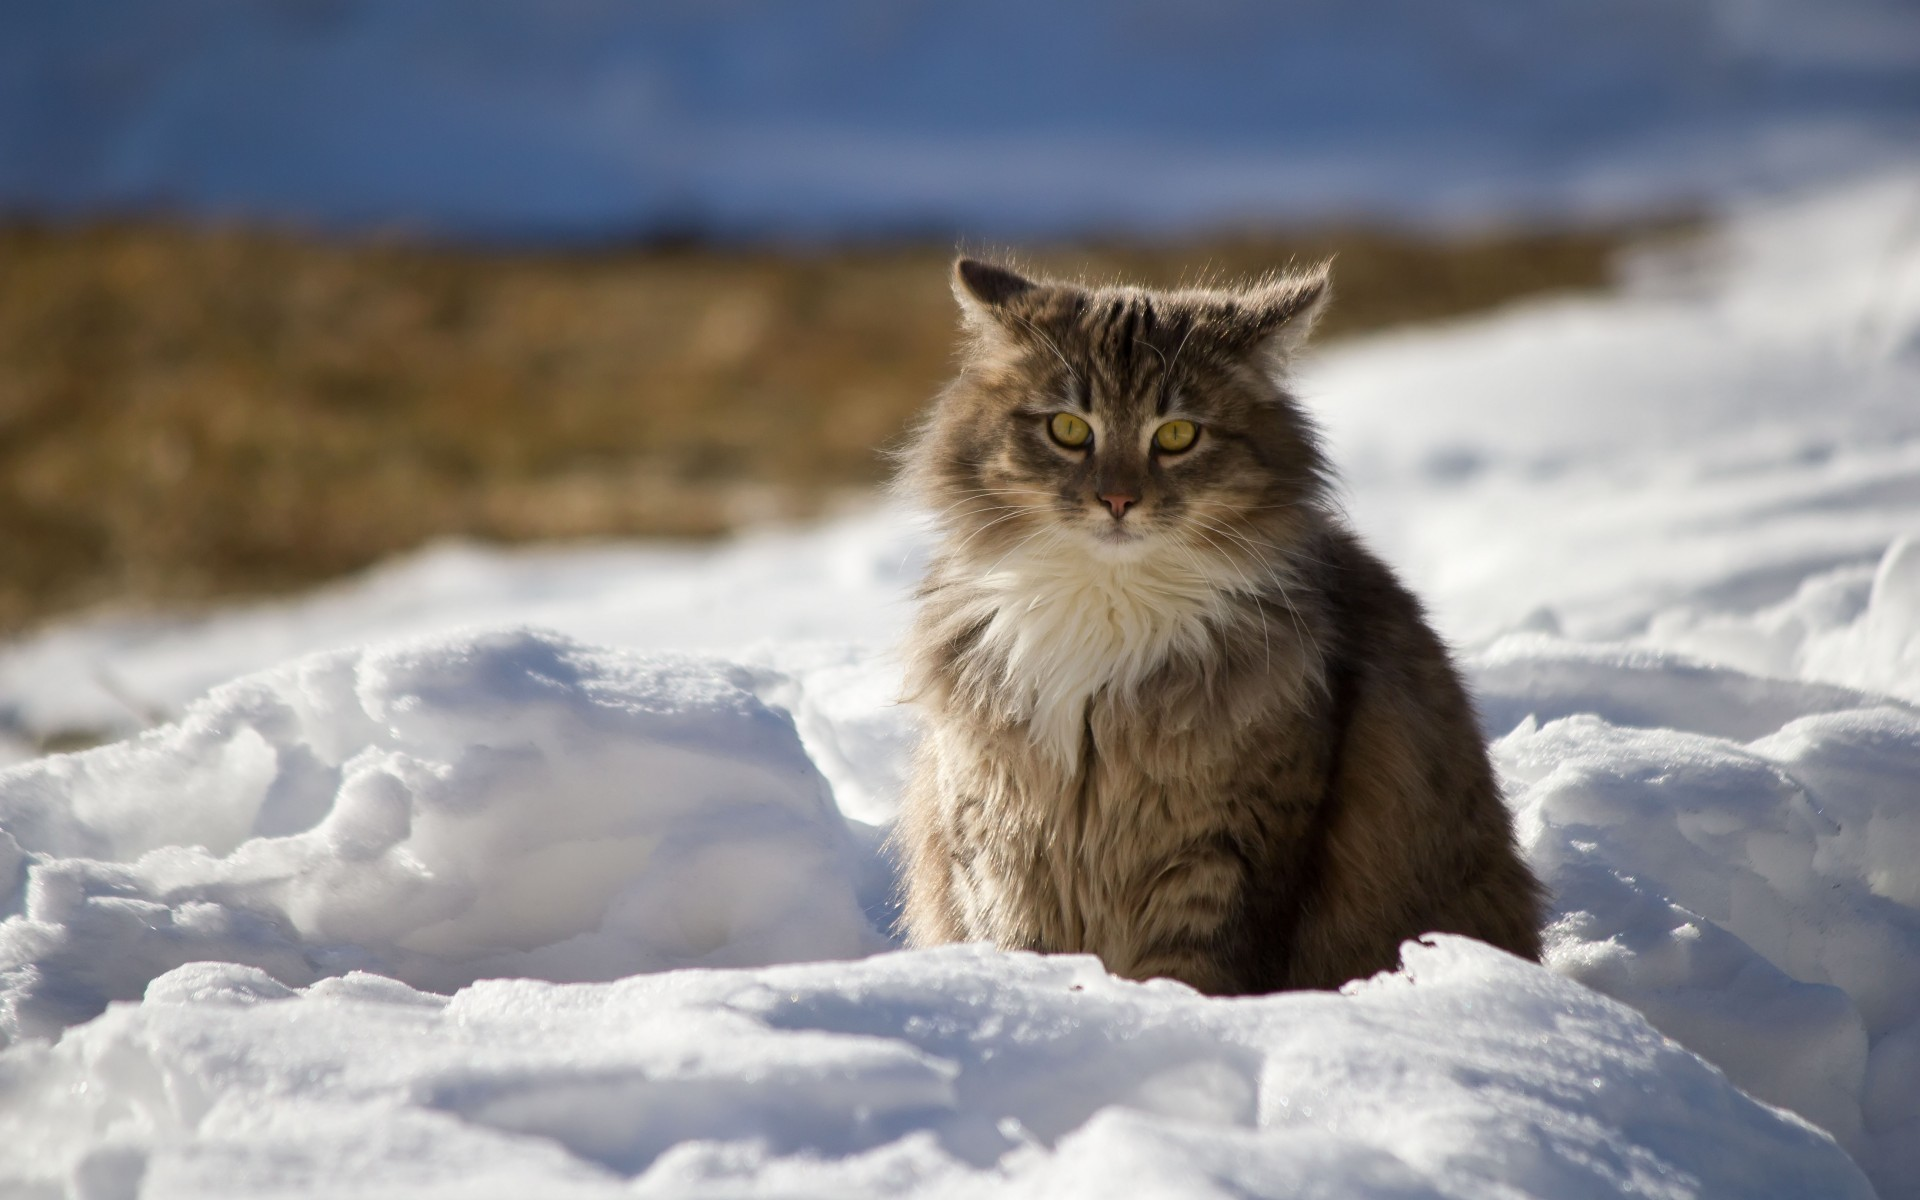 Res: 1920x1200, Maine Coon, Fluffy Cat, Snow, Sit